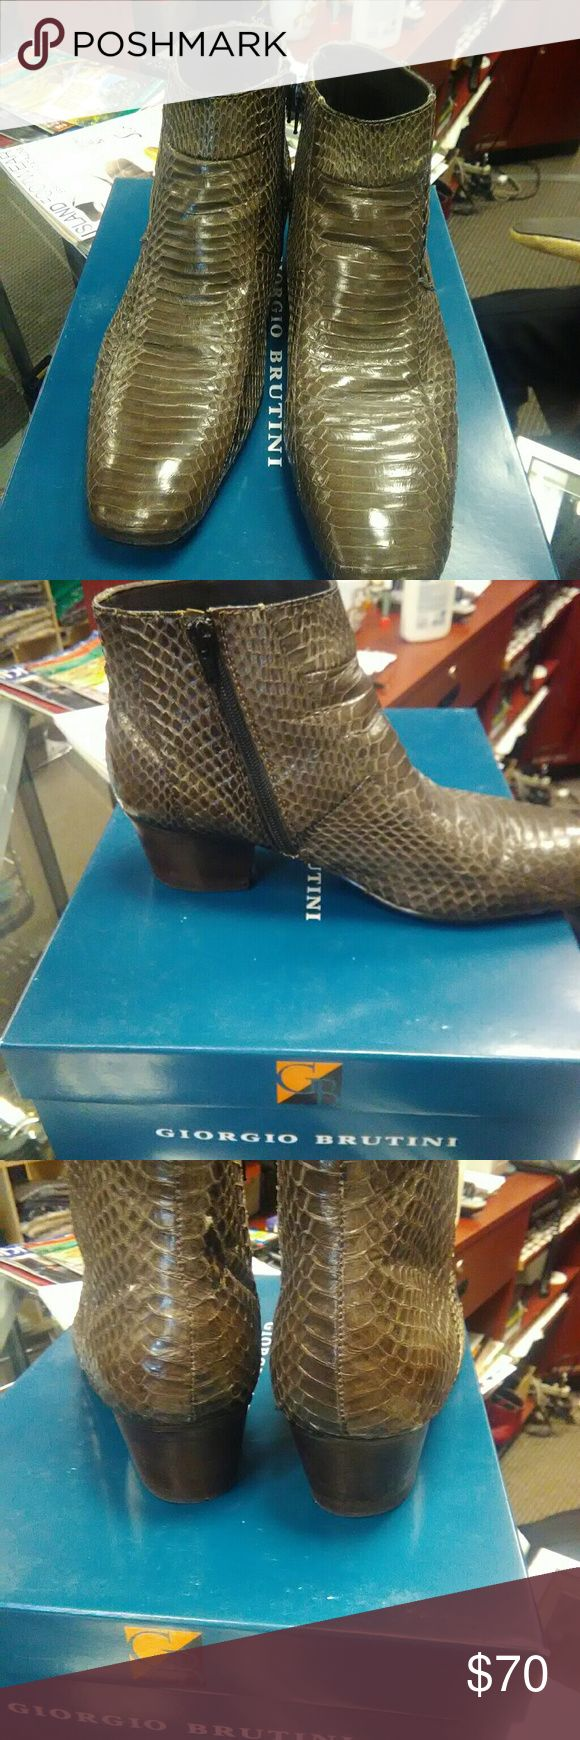 GIORGIO BRUTINI BOOTS GIORGIO BRUTINI Genuine Snake Leather Boots for men GIORGIO BRUTINI Shoes Boots